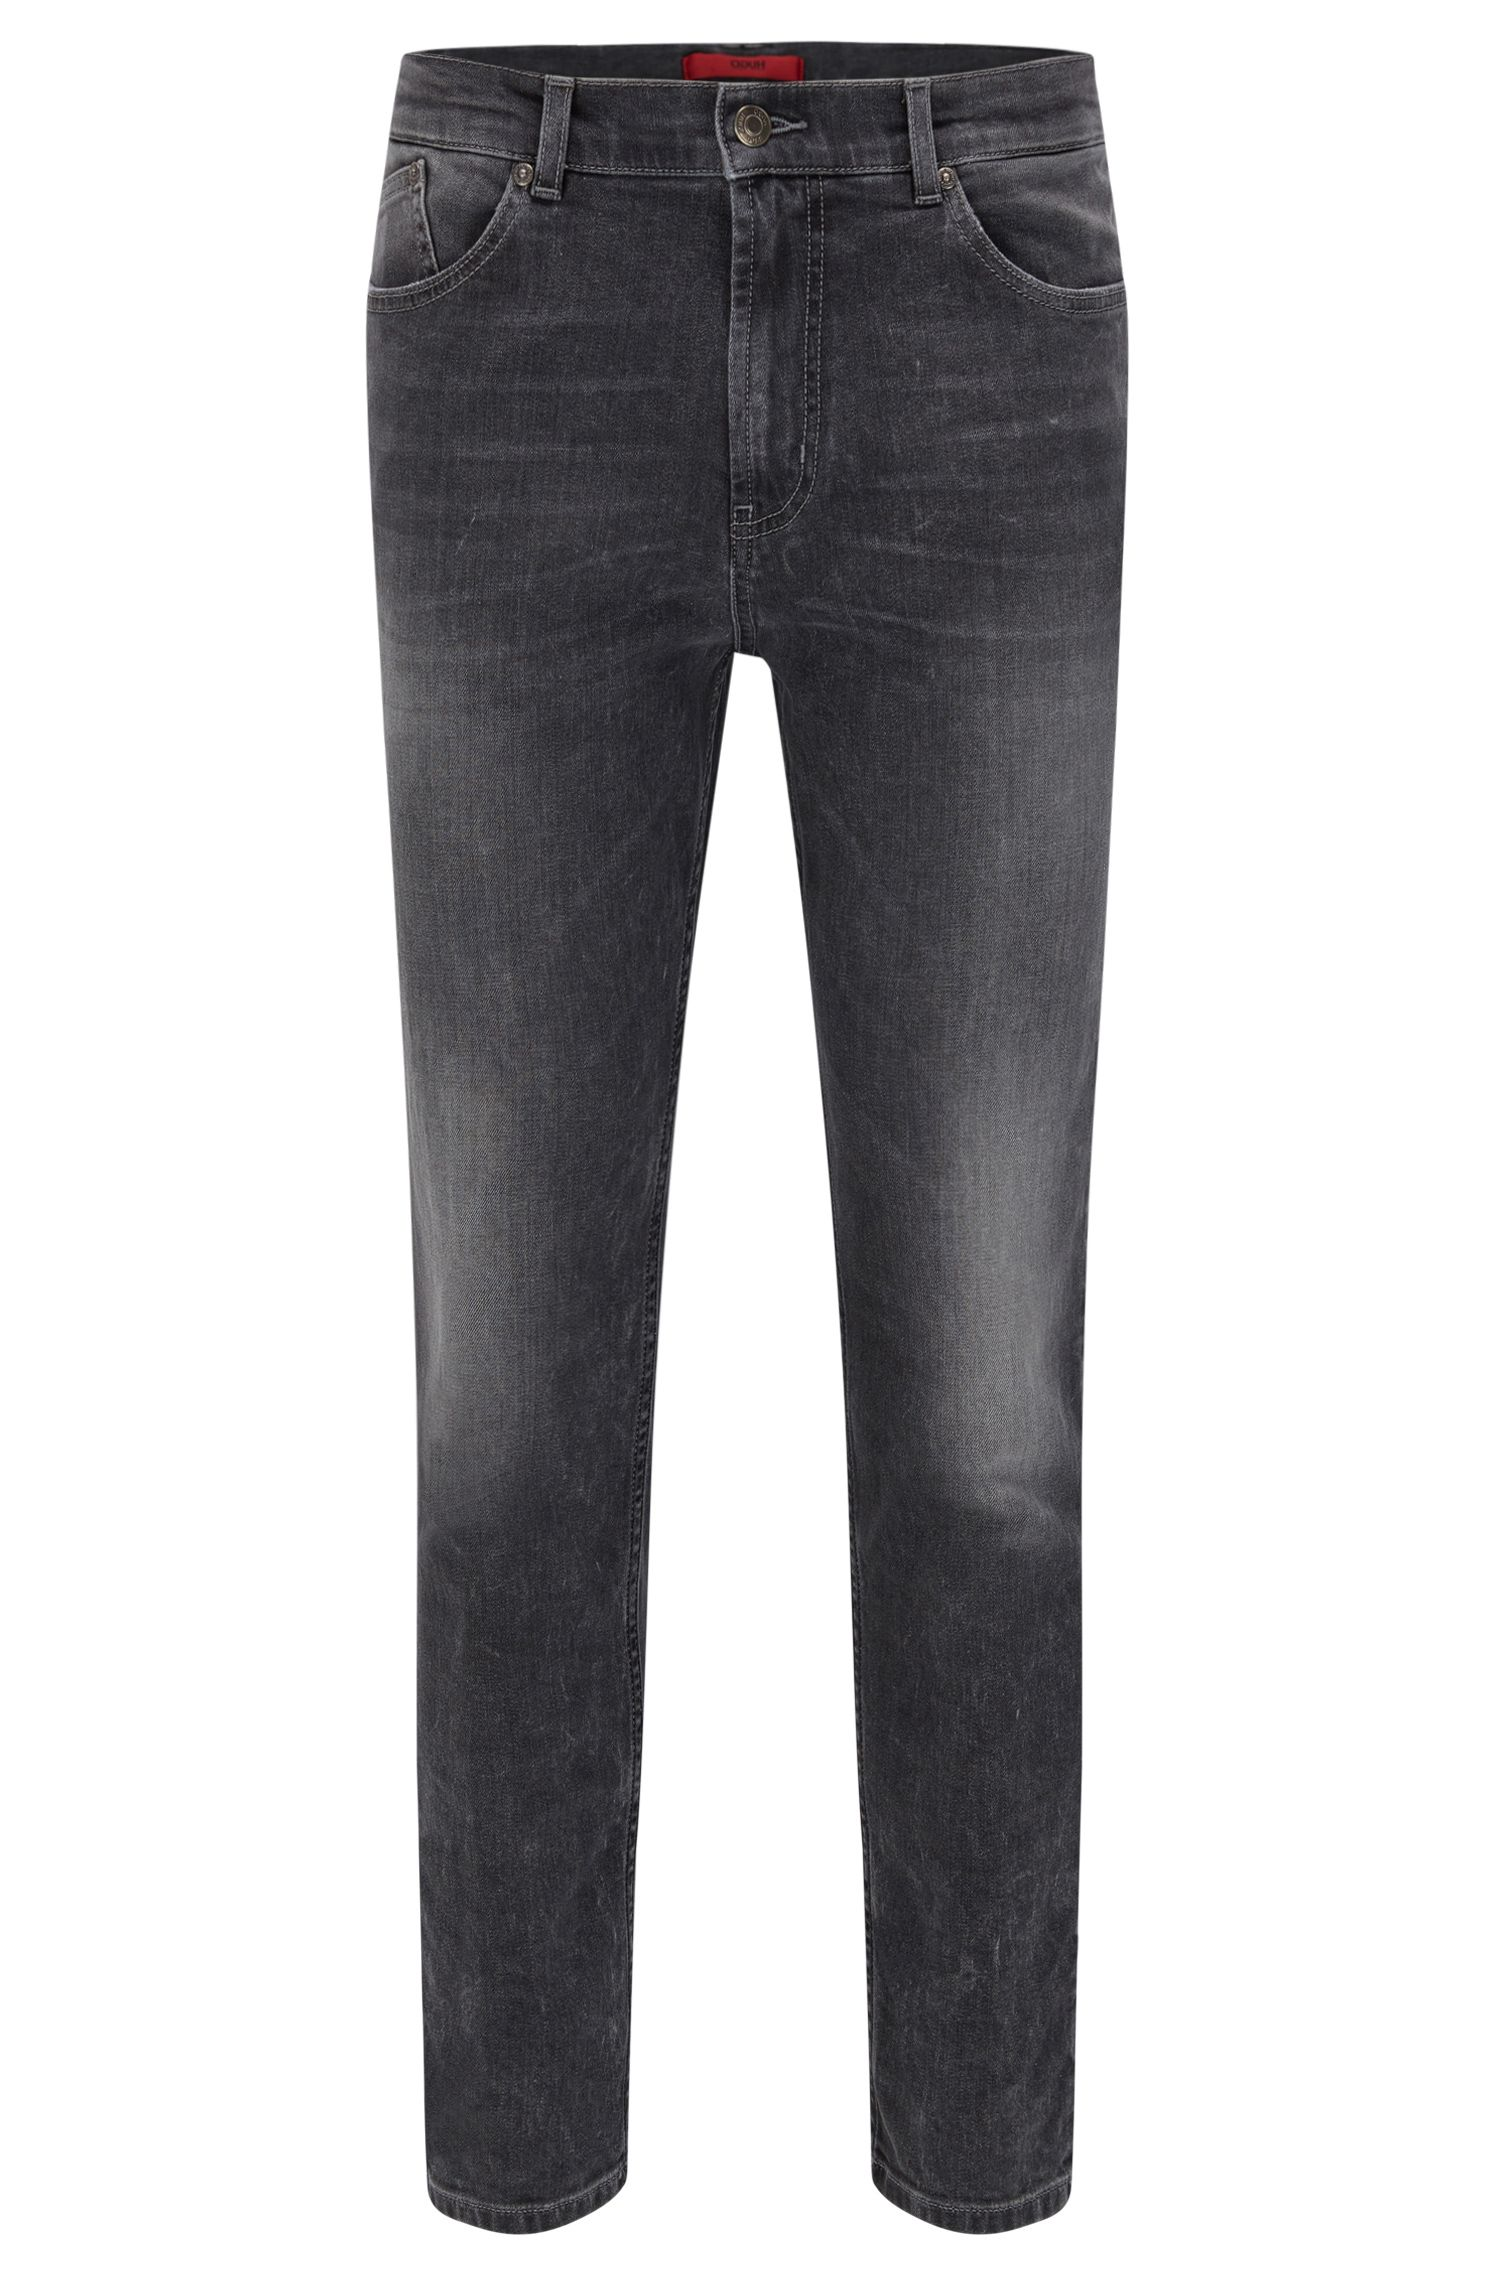 9.5 oz Stretch Cotton Jeans, Slim Fit | Hugo 332